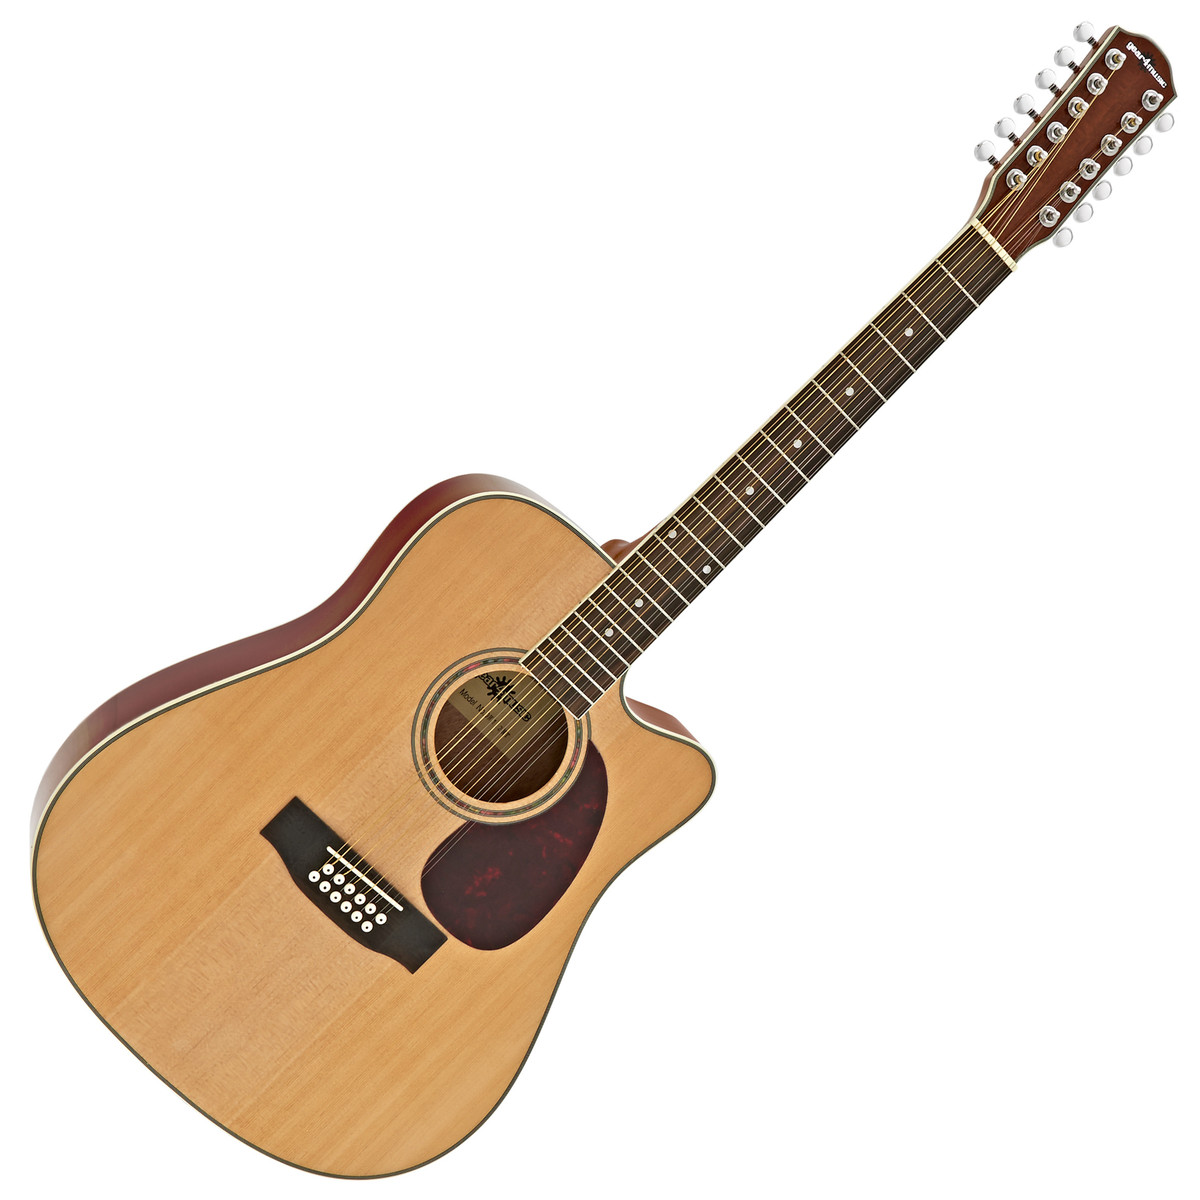 dreadnought 12 string acoustic guitar by gear4music b stock at gear4music. Black Bedroom Furniture Sets. Home Design Ideas